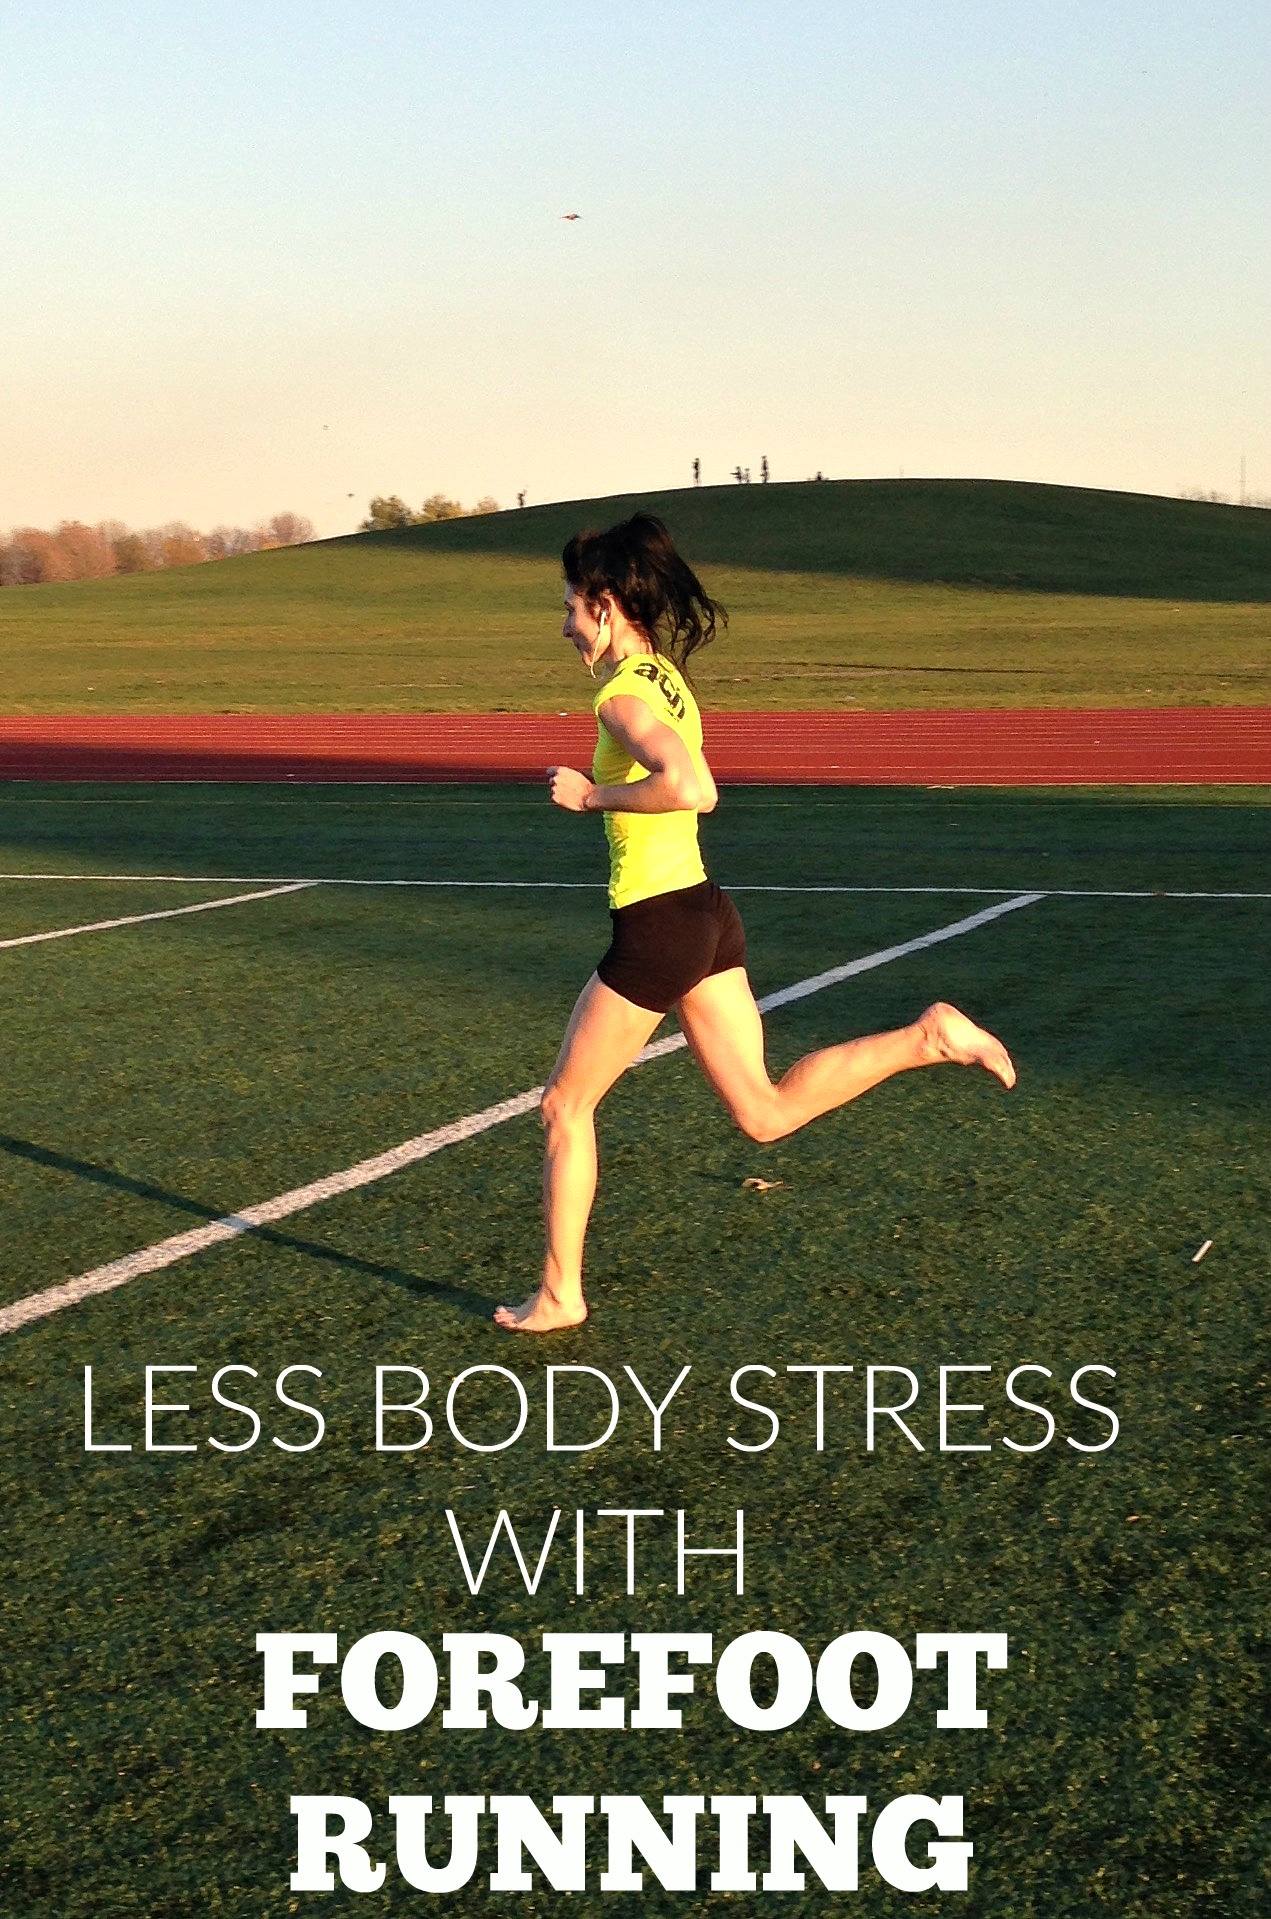 Less Body Stress with Forefoot Running